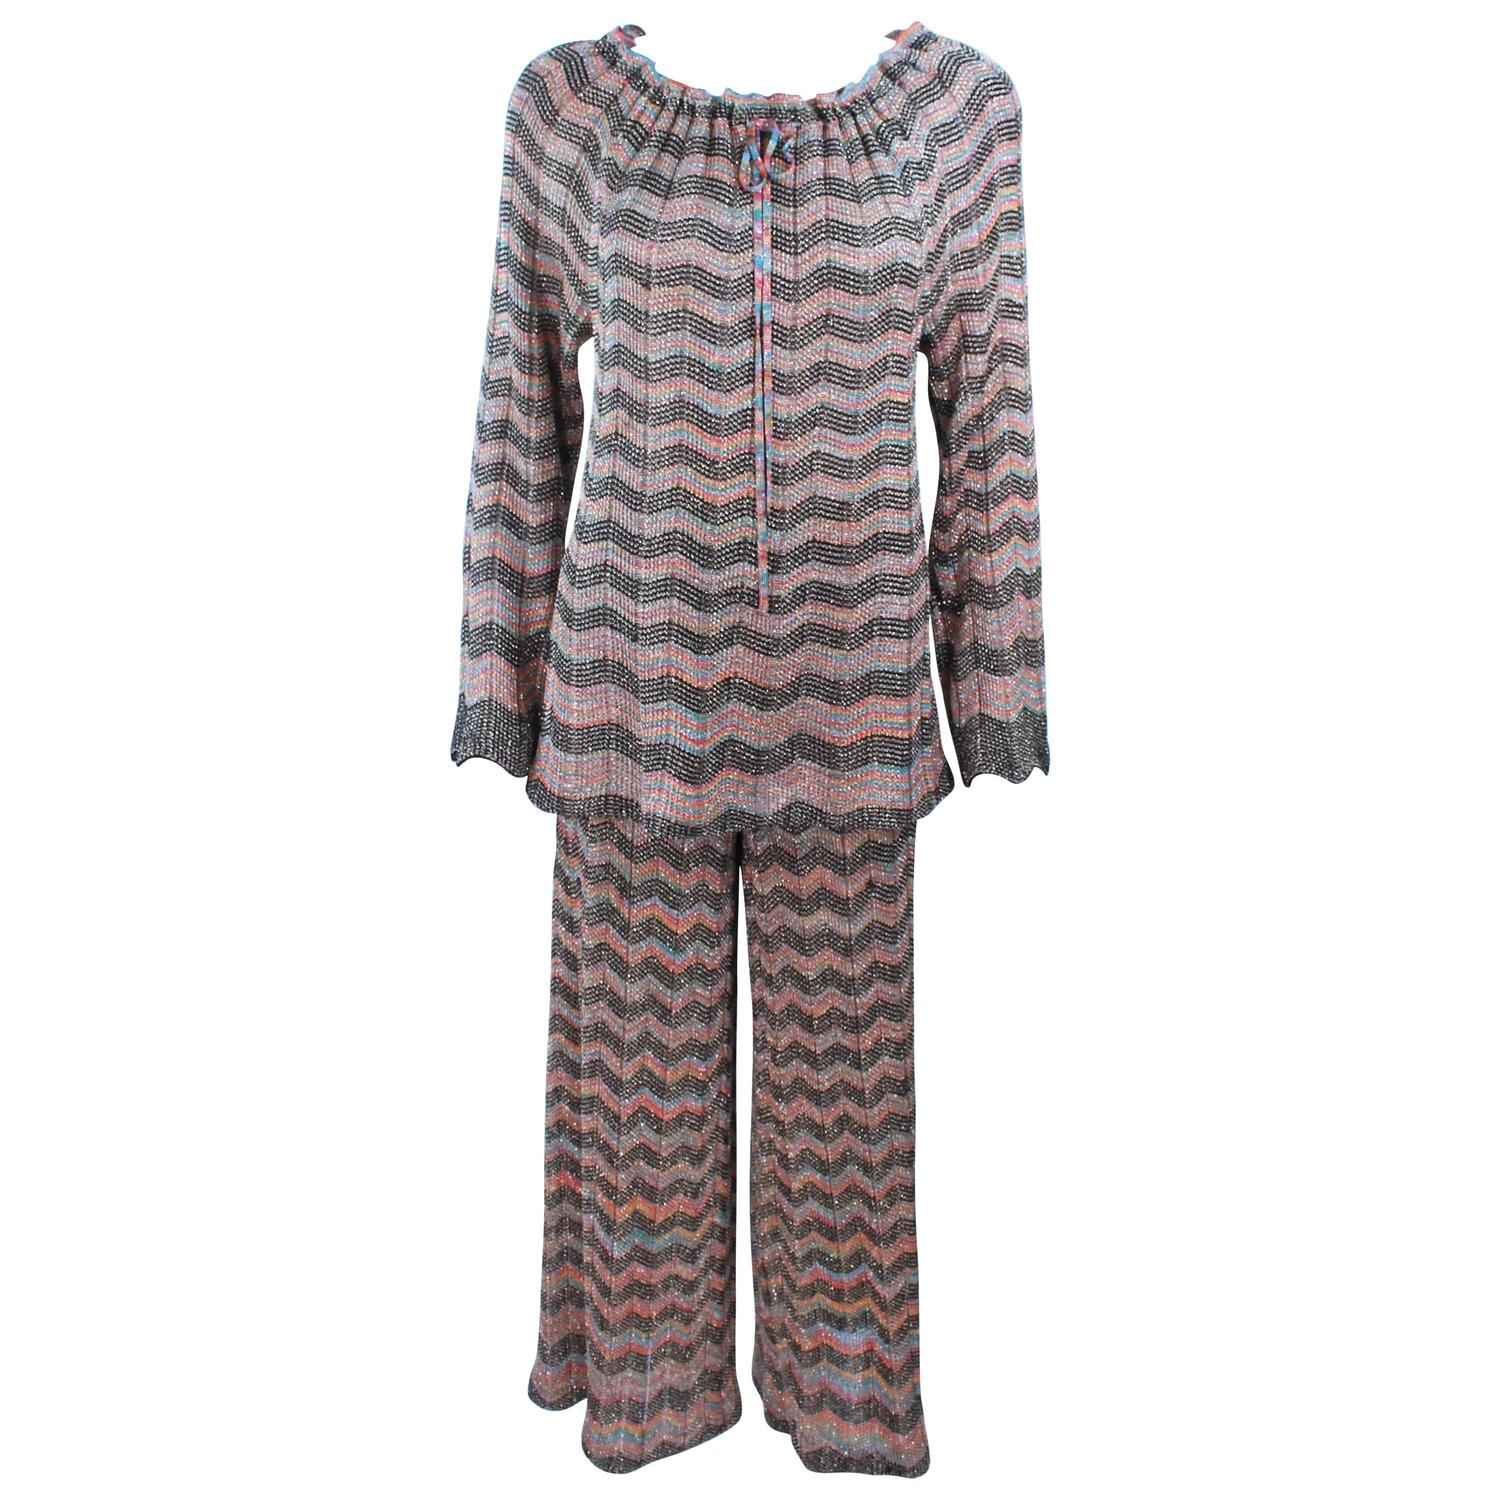 Knit Zig Zag Pattern : MISSONI Gold and Black Zig Zag Pattern Metallic Knit Size 46 For Sale at 1stdibs